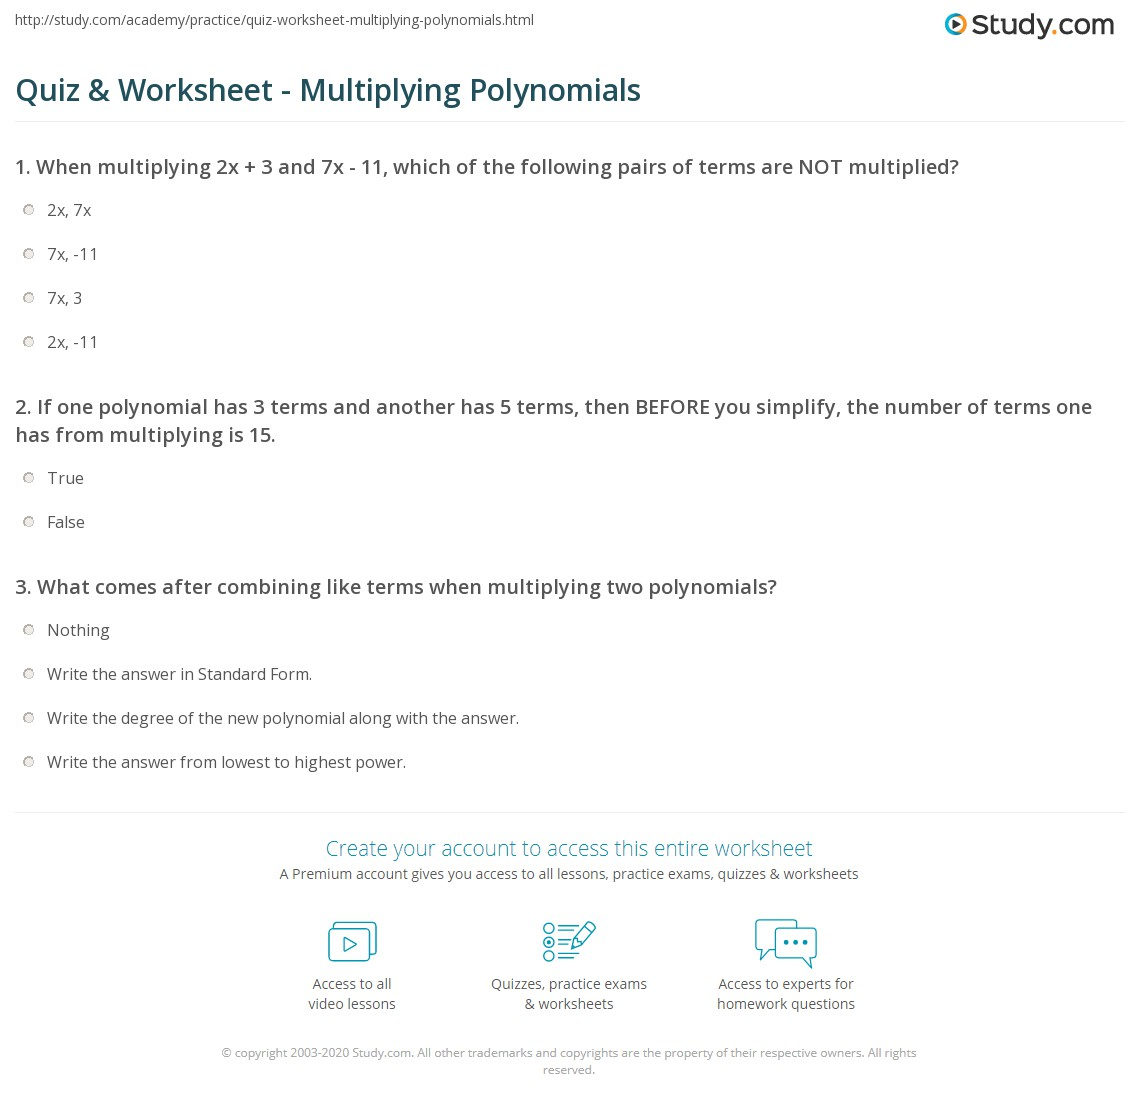 Multiplying Polynomials Worksheet Answer Key